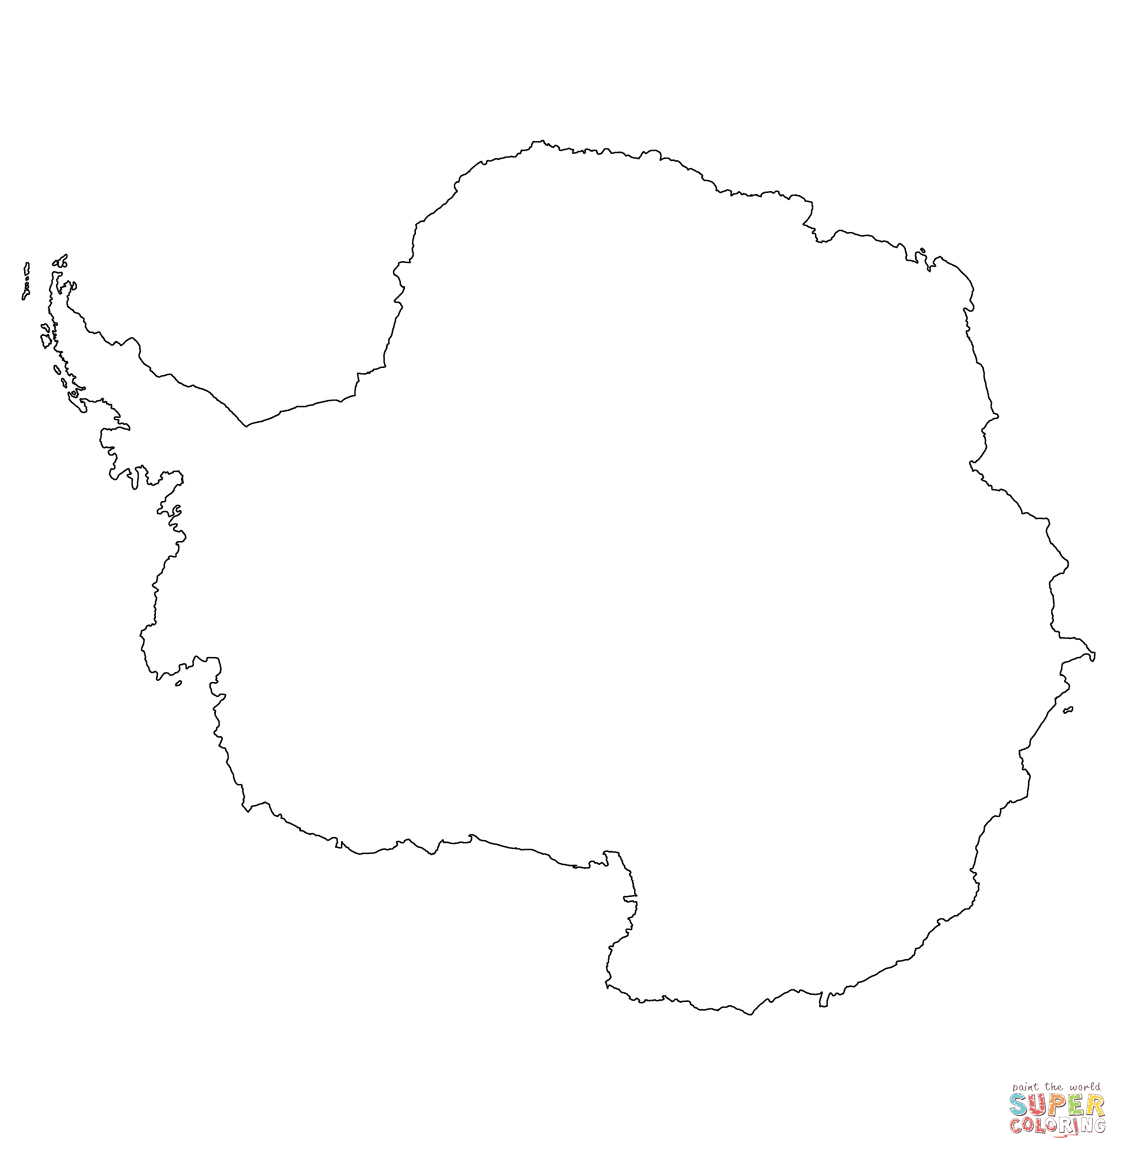 Antarctica Outline Map Coloring Page | Free Printable Coloring Pages - Printable Map Of Antarctica